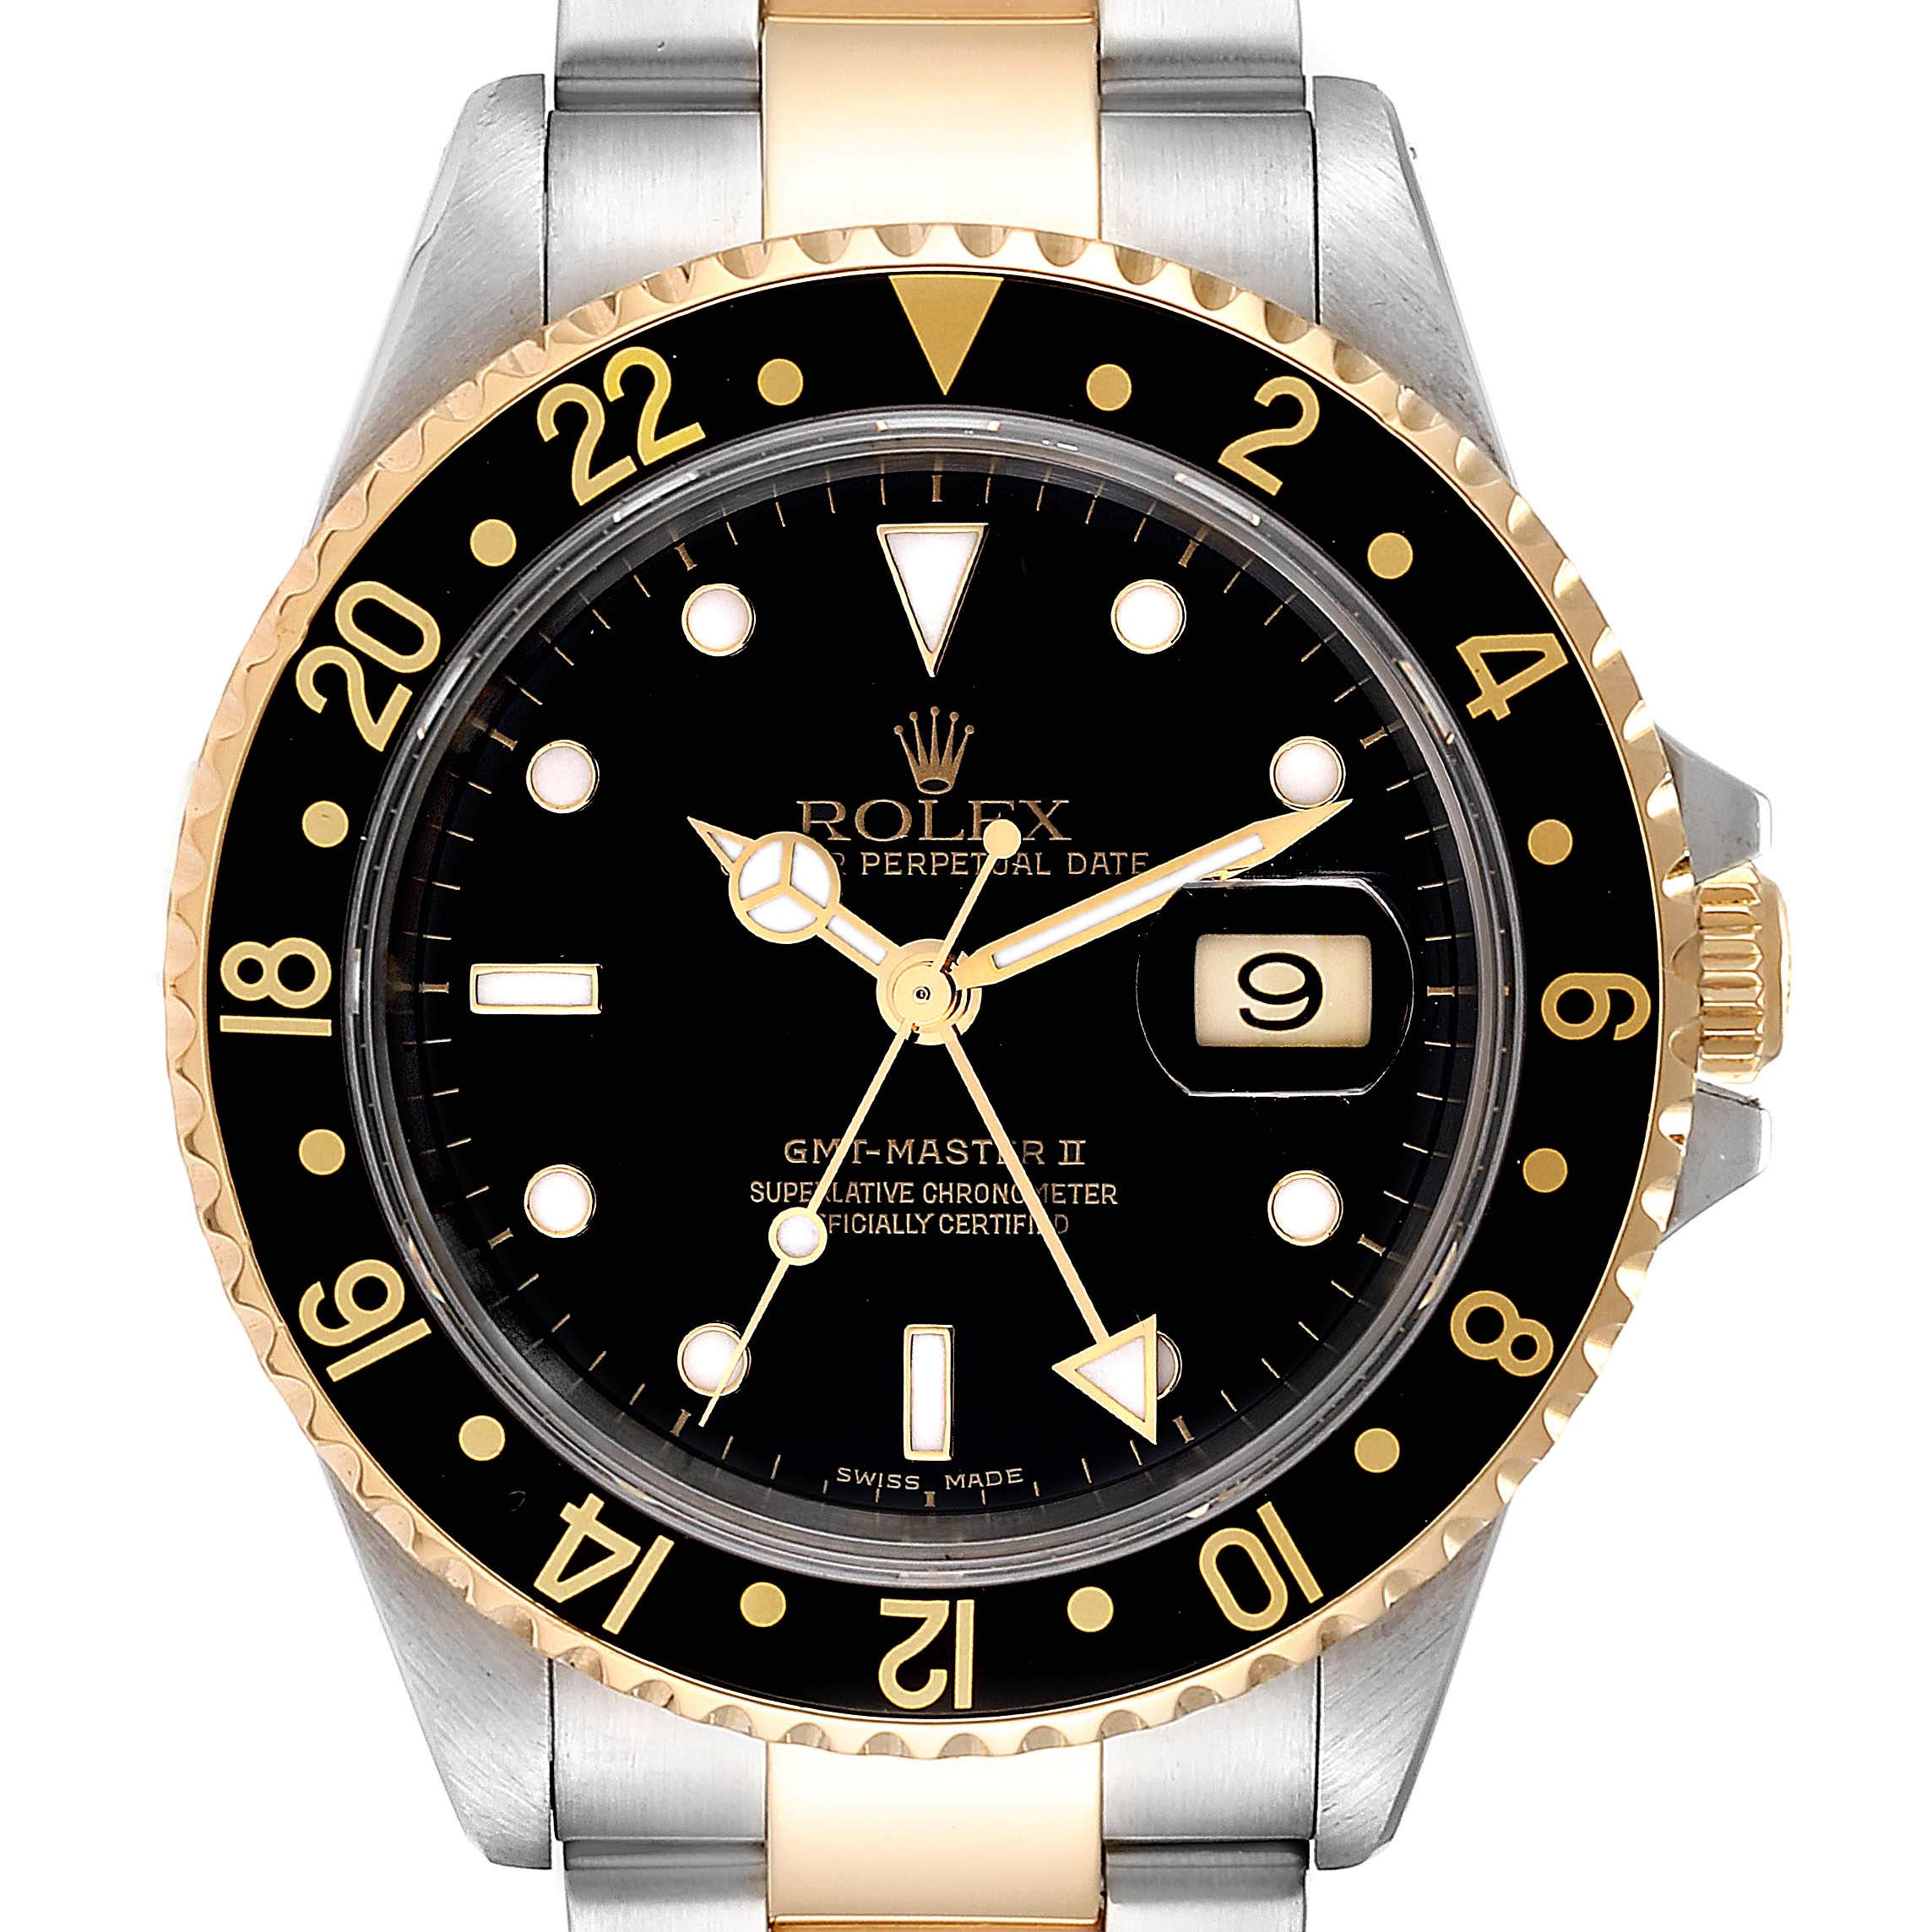 Photo of Rolex GMT Master II Yellow Gold Steel Oyster Bracelet Mens Watch 16713 PARTIAL PAYMENT